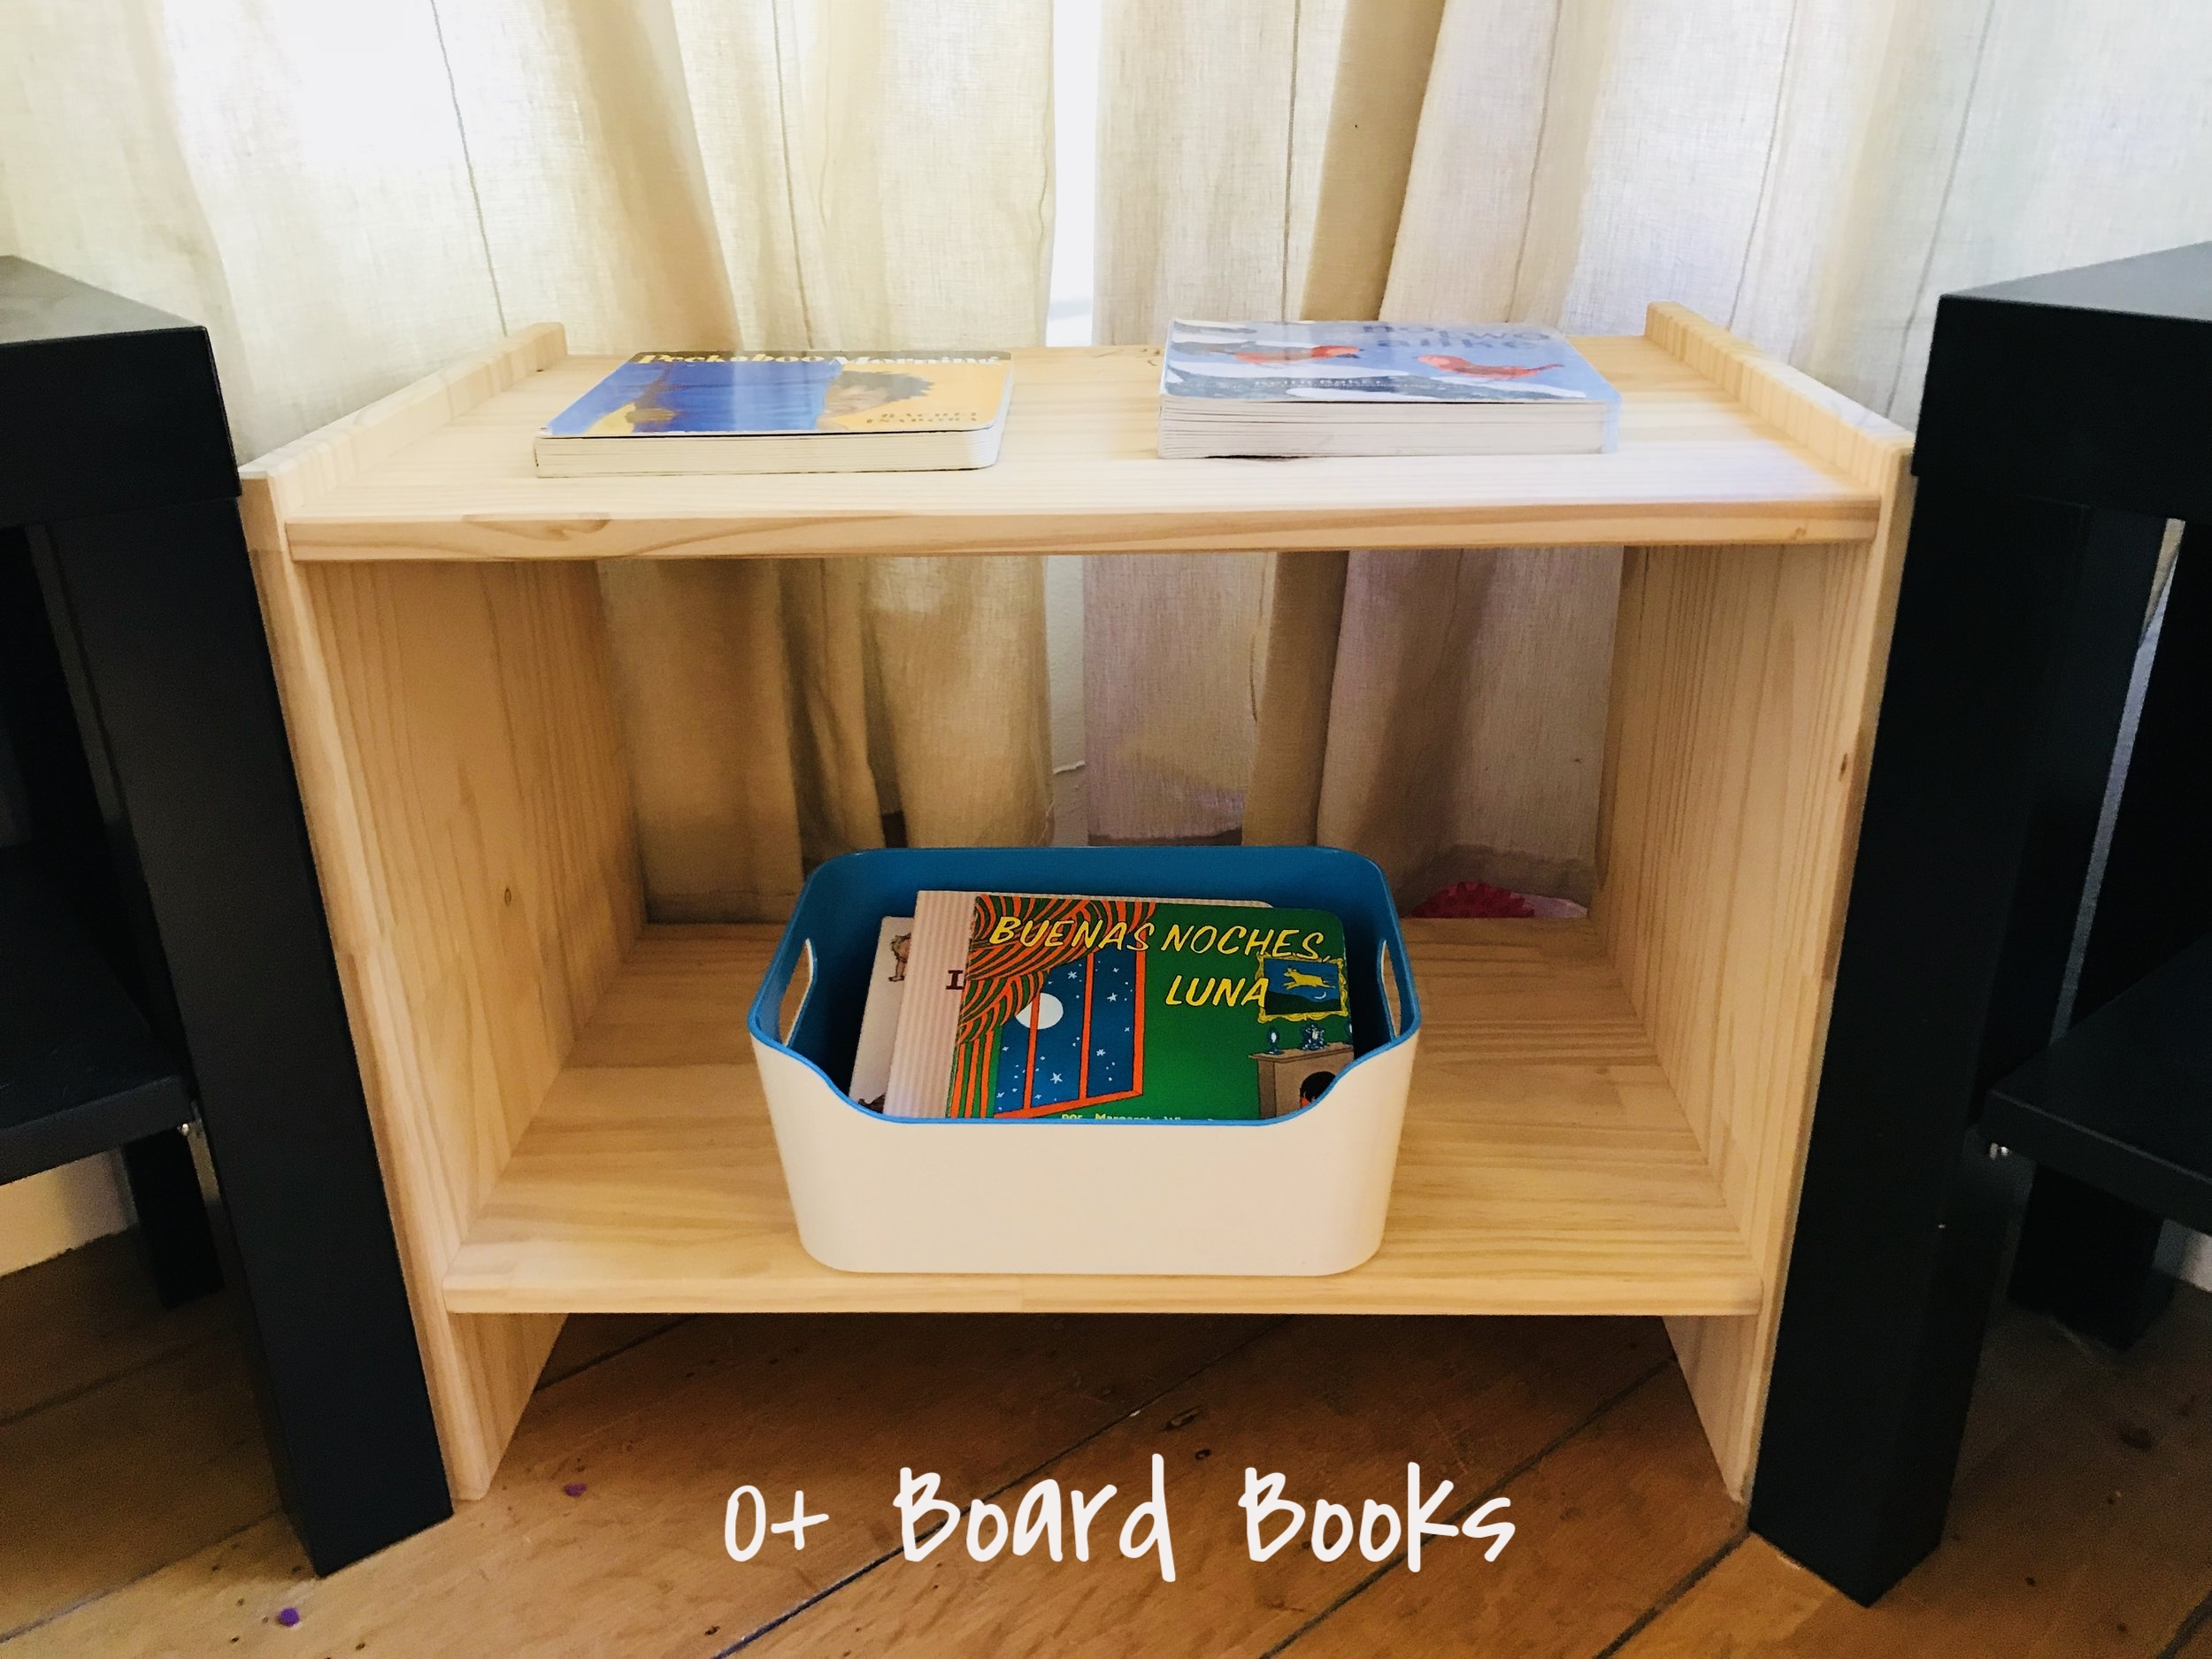 infant book shelf.jpg